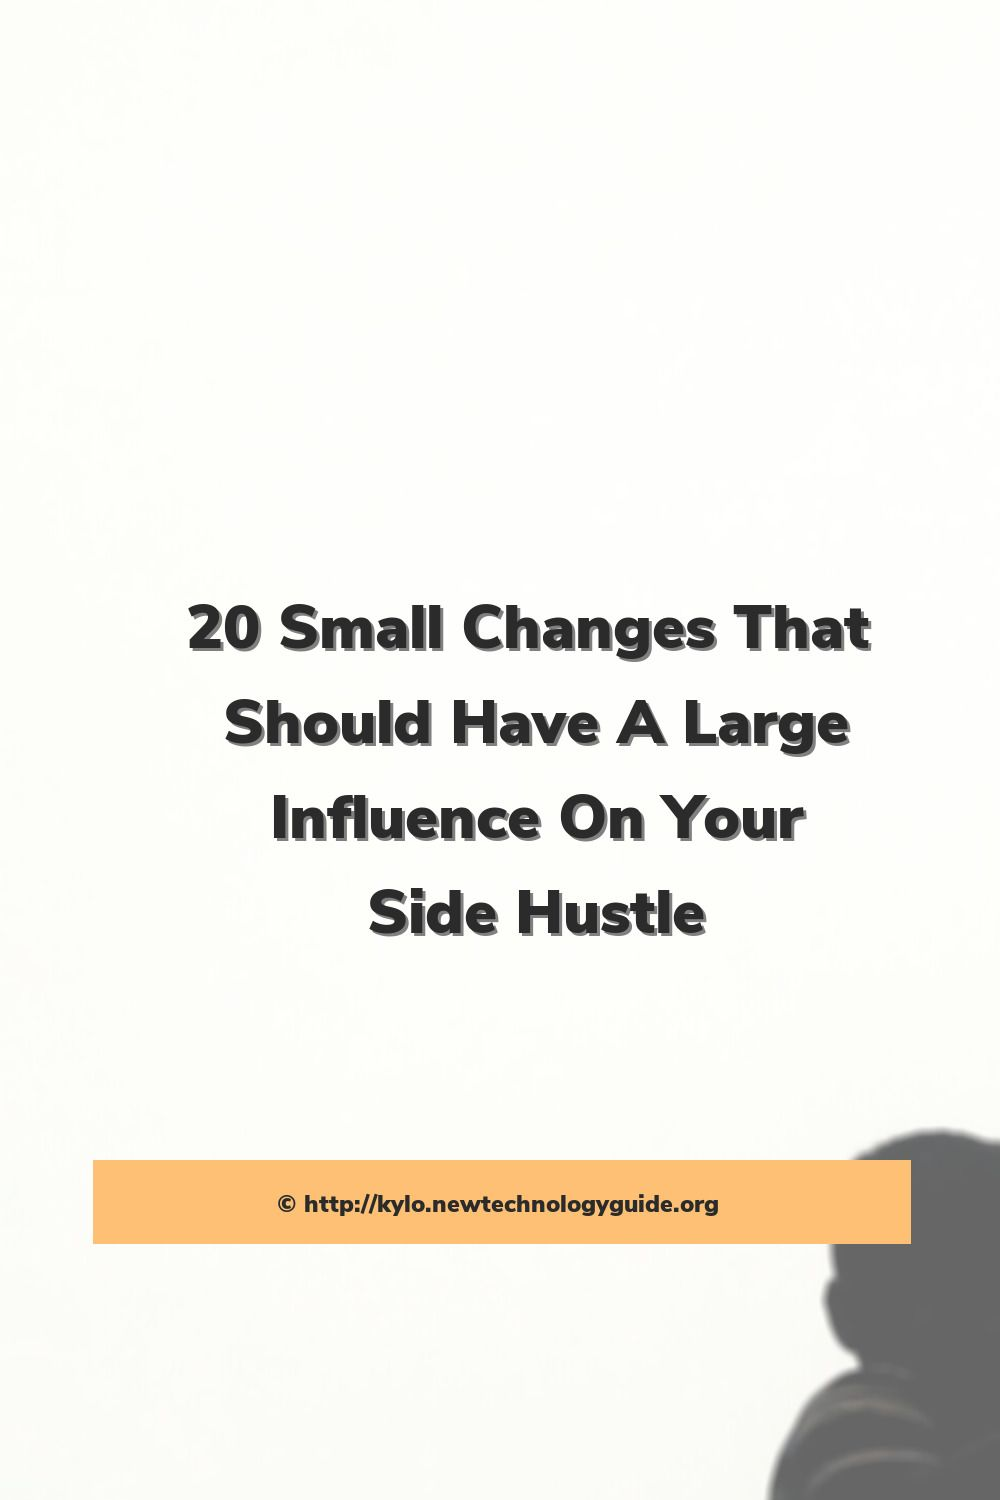 The Right Way To Earn Consumers And Change Income With Side Hustle #anxietyhustle